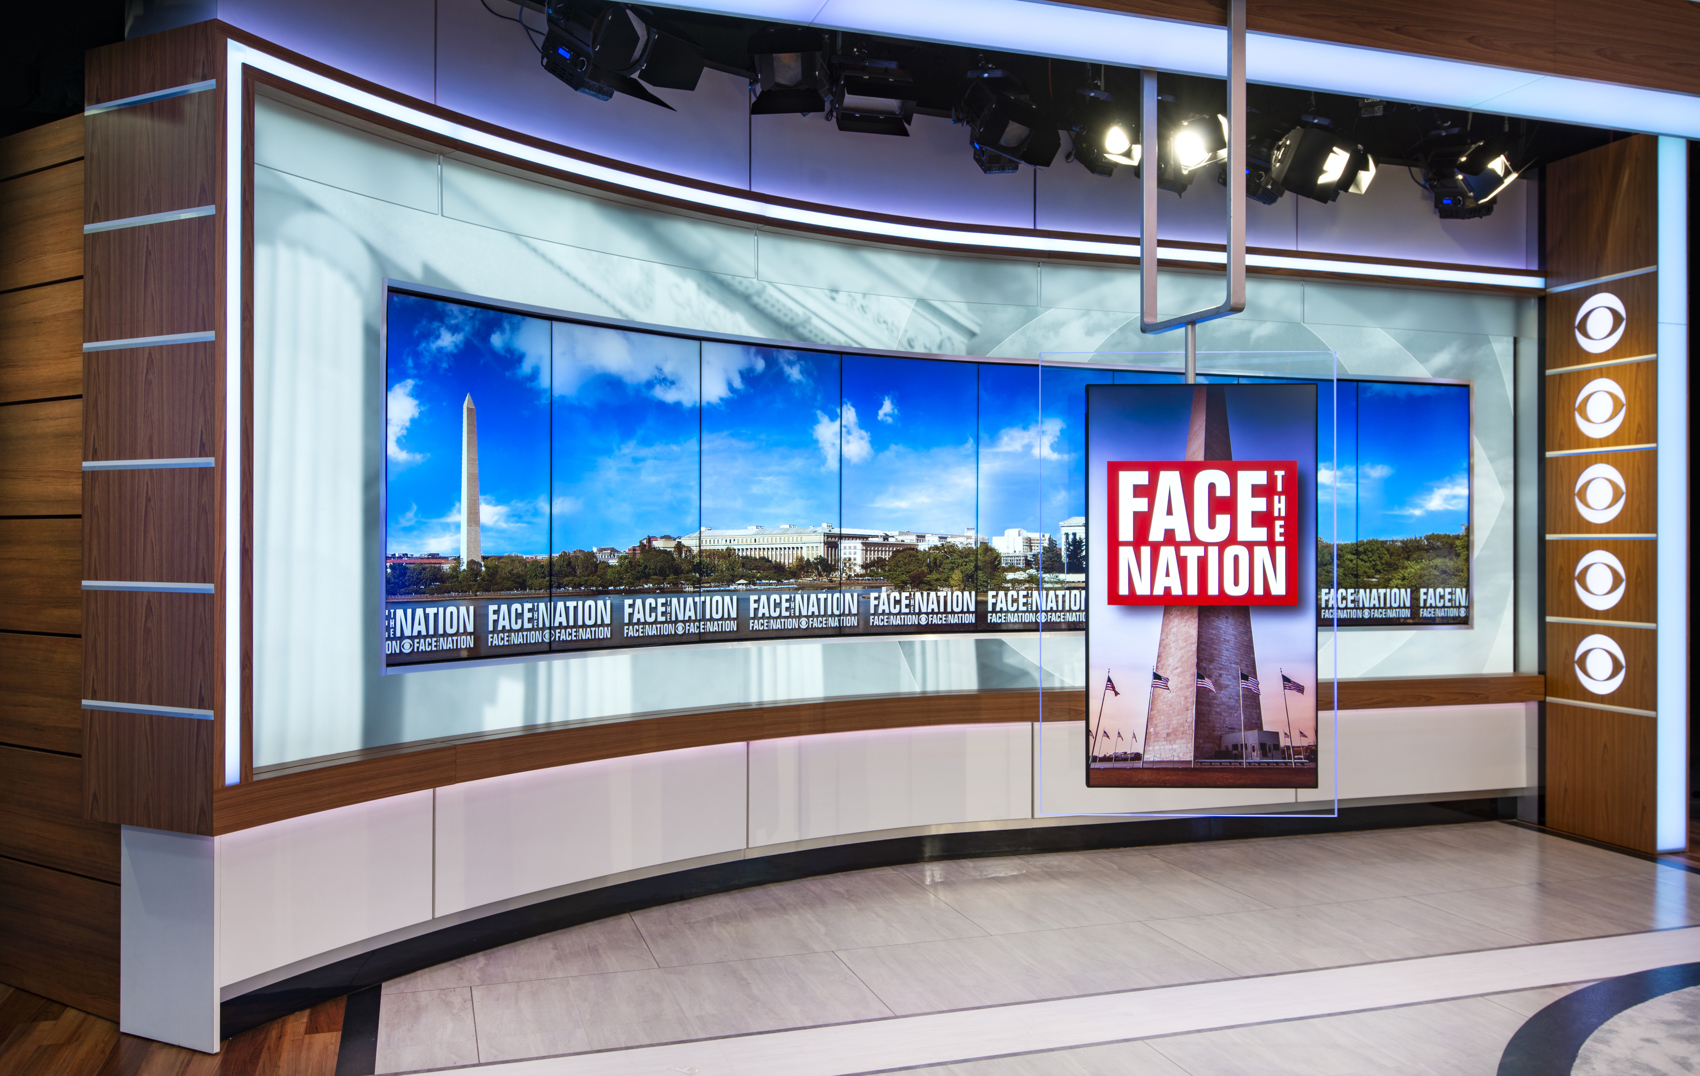 ncs_cbs-news_face-the-nation_tv-studio_0004